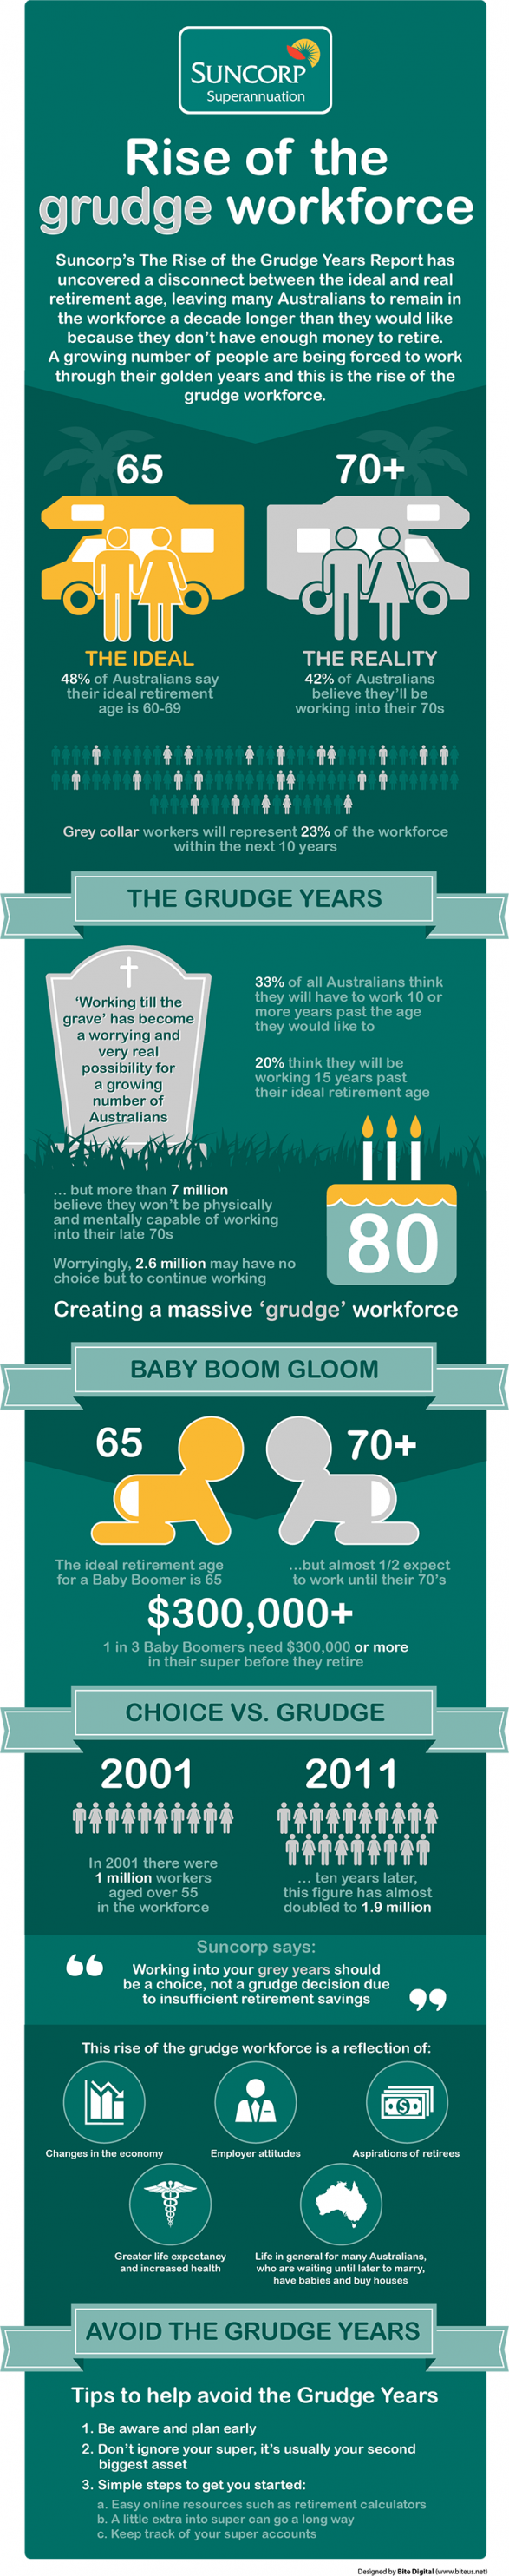 The Rise of the Grudge Workforce